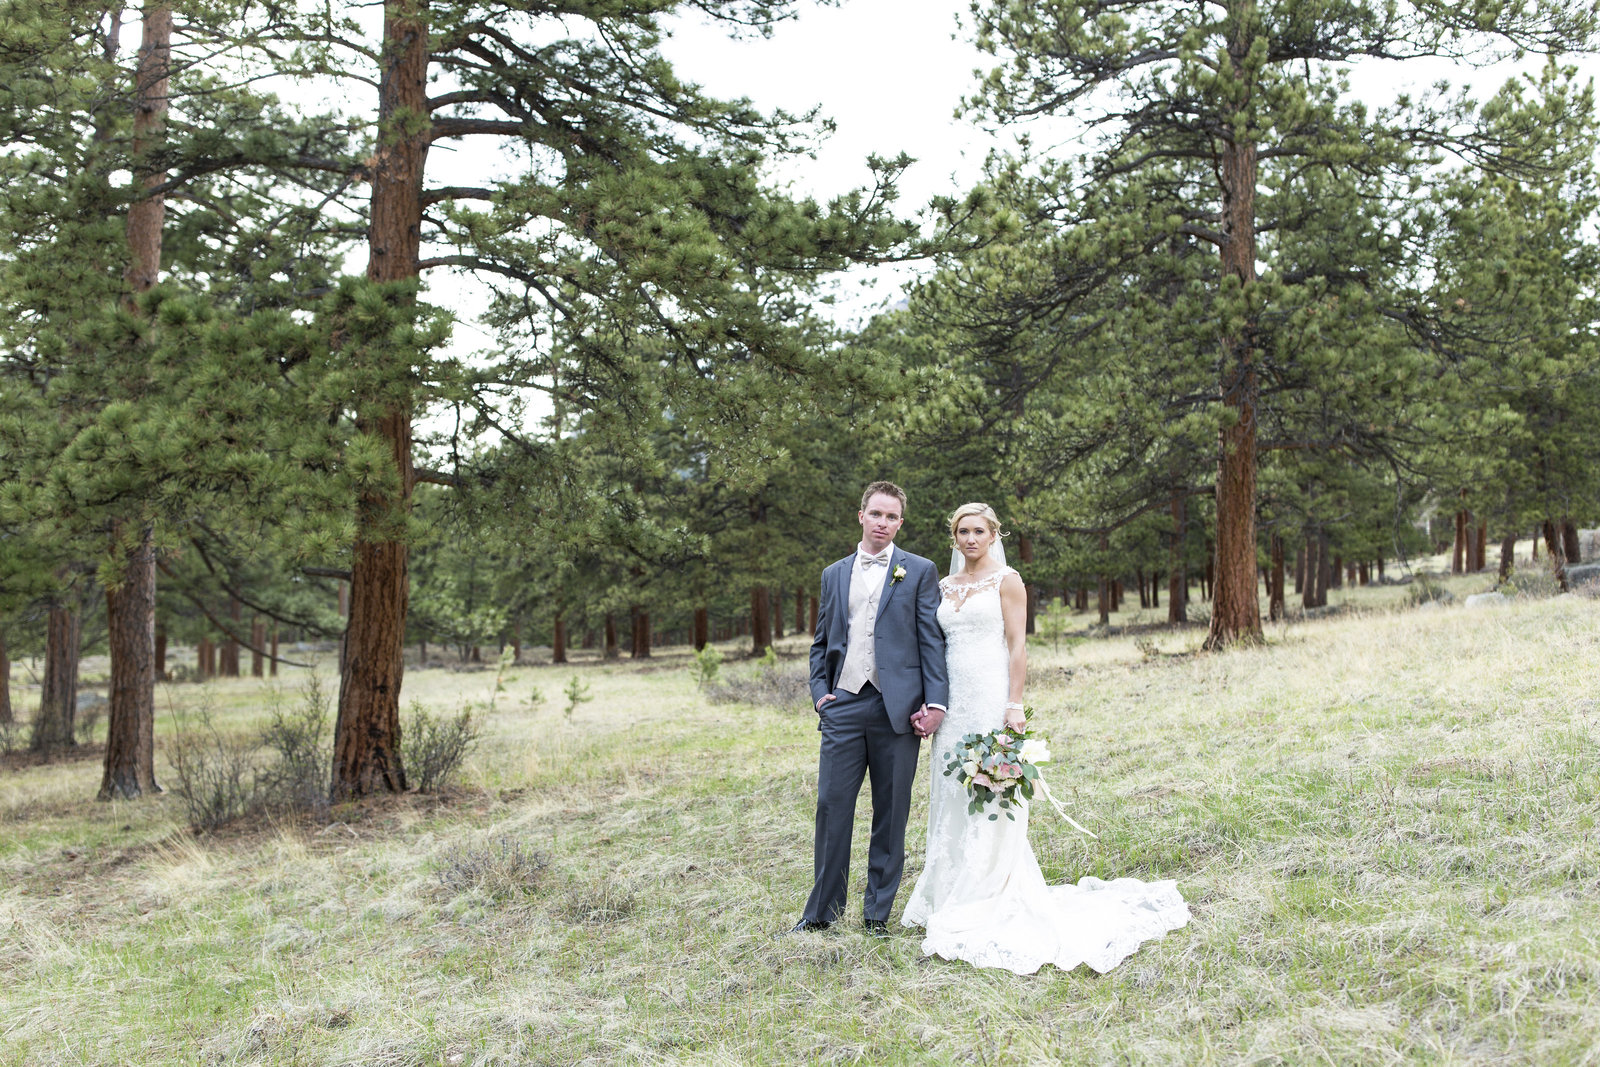 Jessi-Zach-Photography-Colorado-Mountain-Wedding-Photographer-Della-Terra-Mountain-Chateau_20